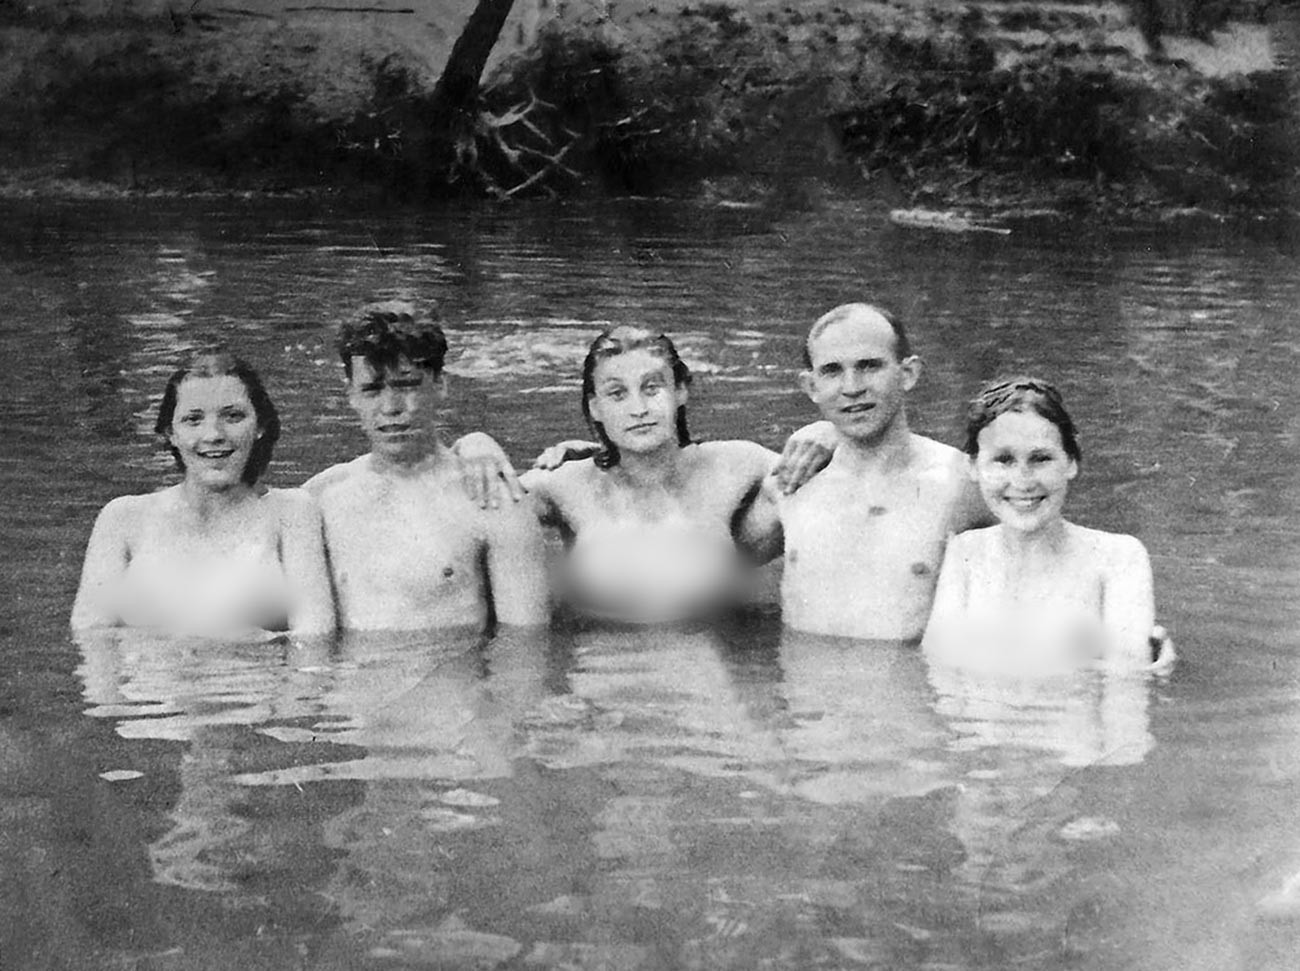 Komsomol members of the Standardbeton factory bathe in the Moskva River, 1940.